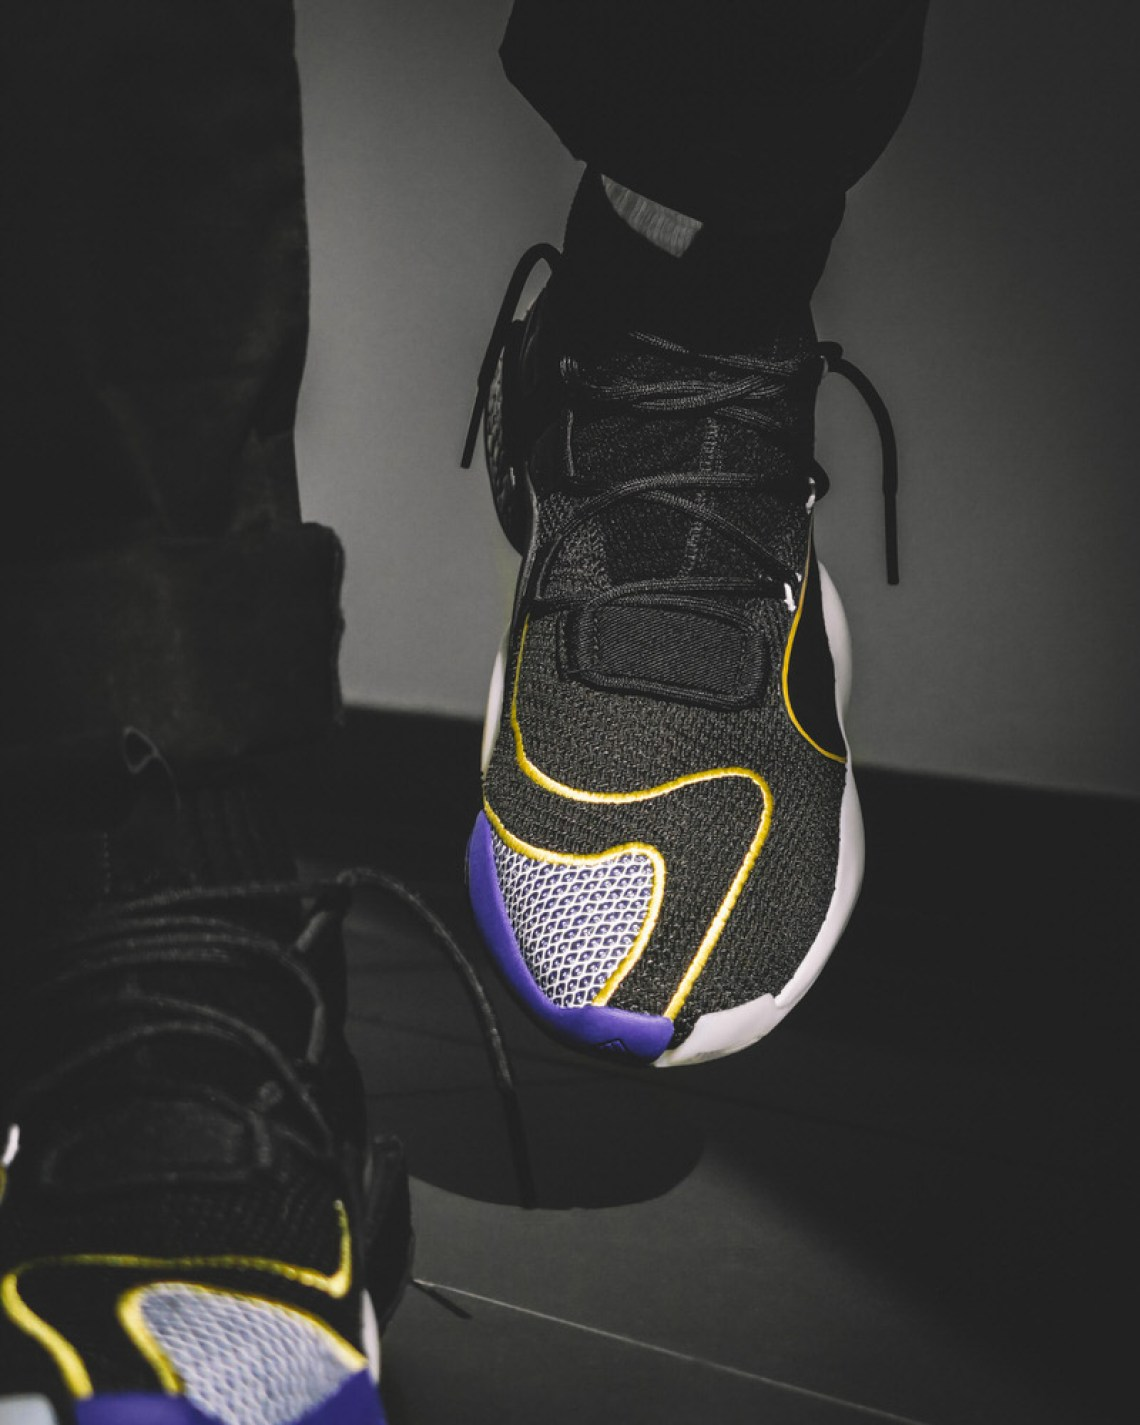 a7d8ceabc9903 The Adidas Crazy BYW X Delivers Style   Performance For A Modern ...